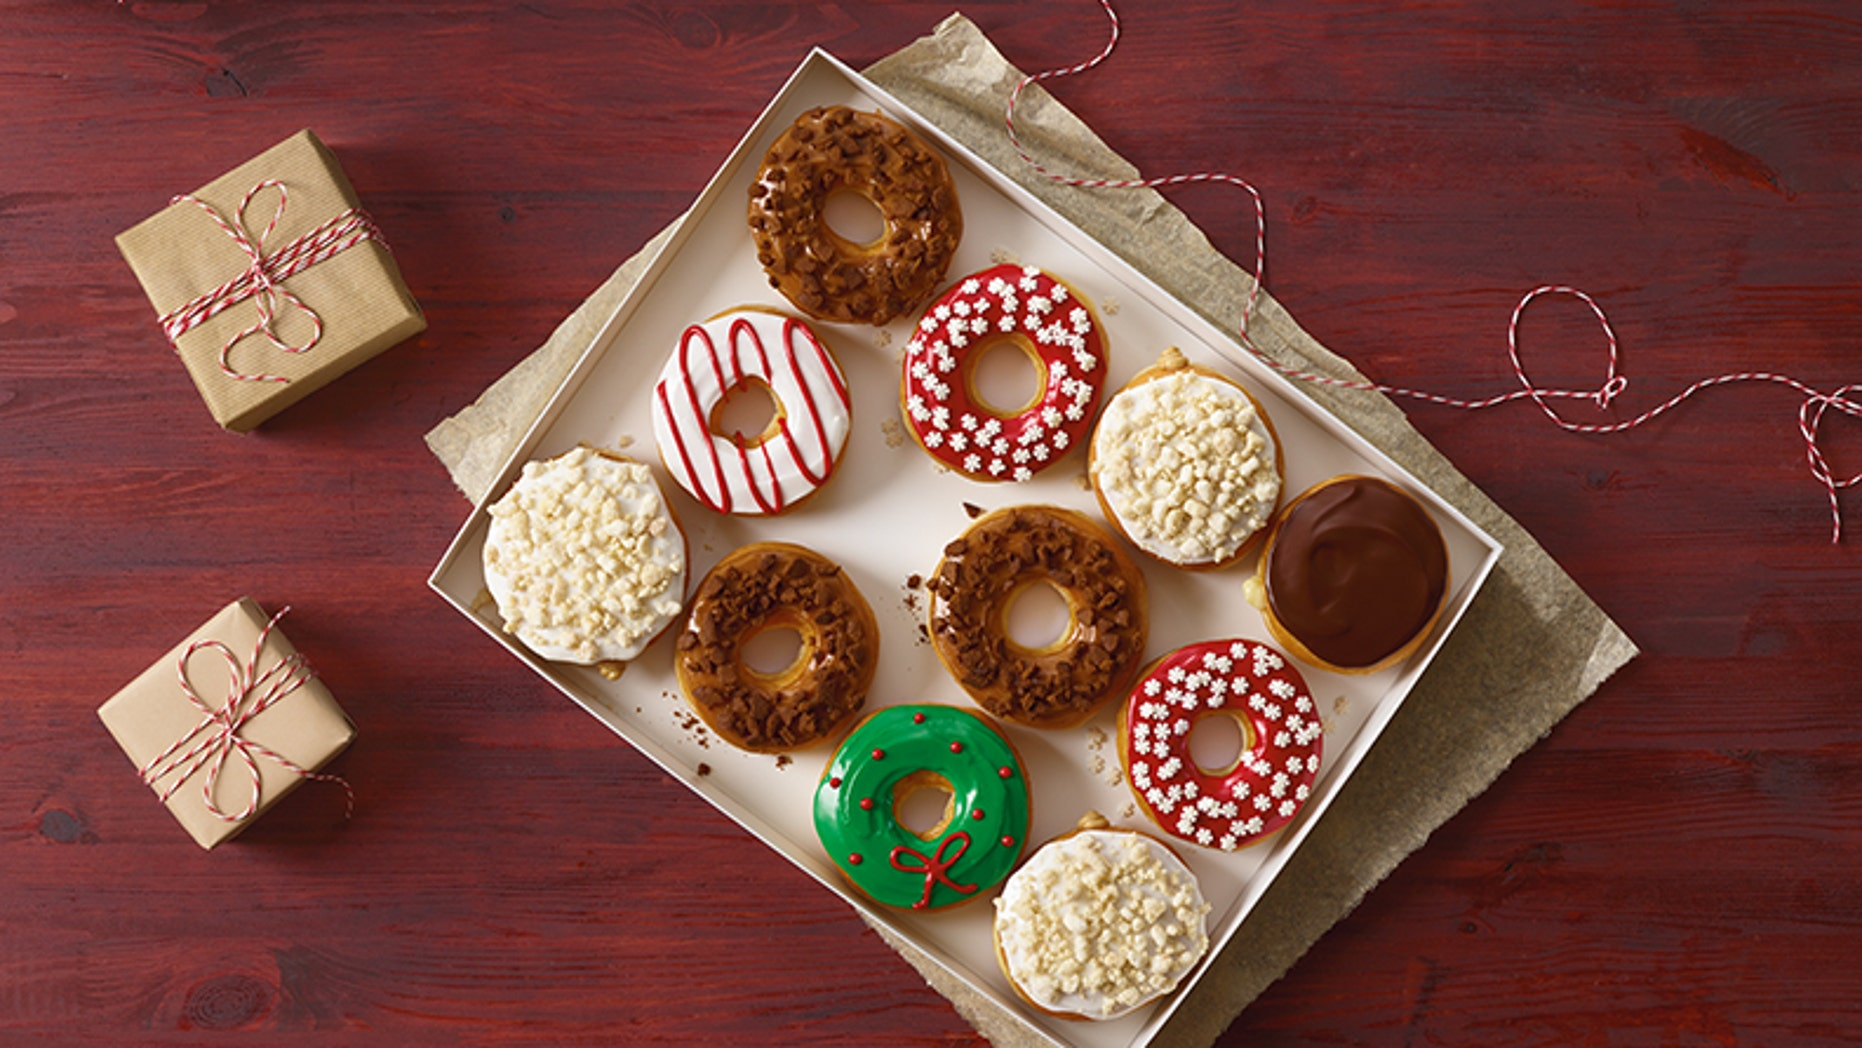 The doughnut chain is getting even sweeter this holiday season.